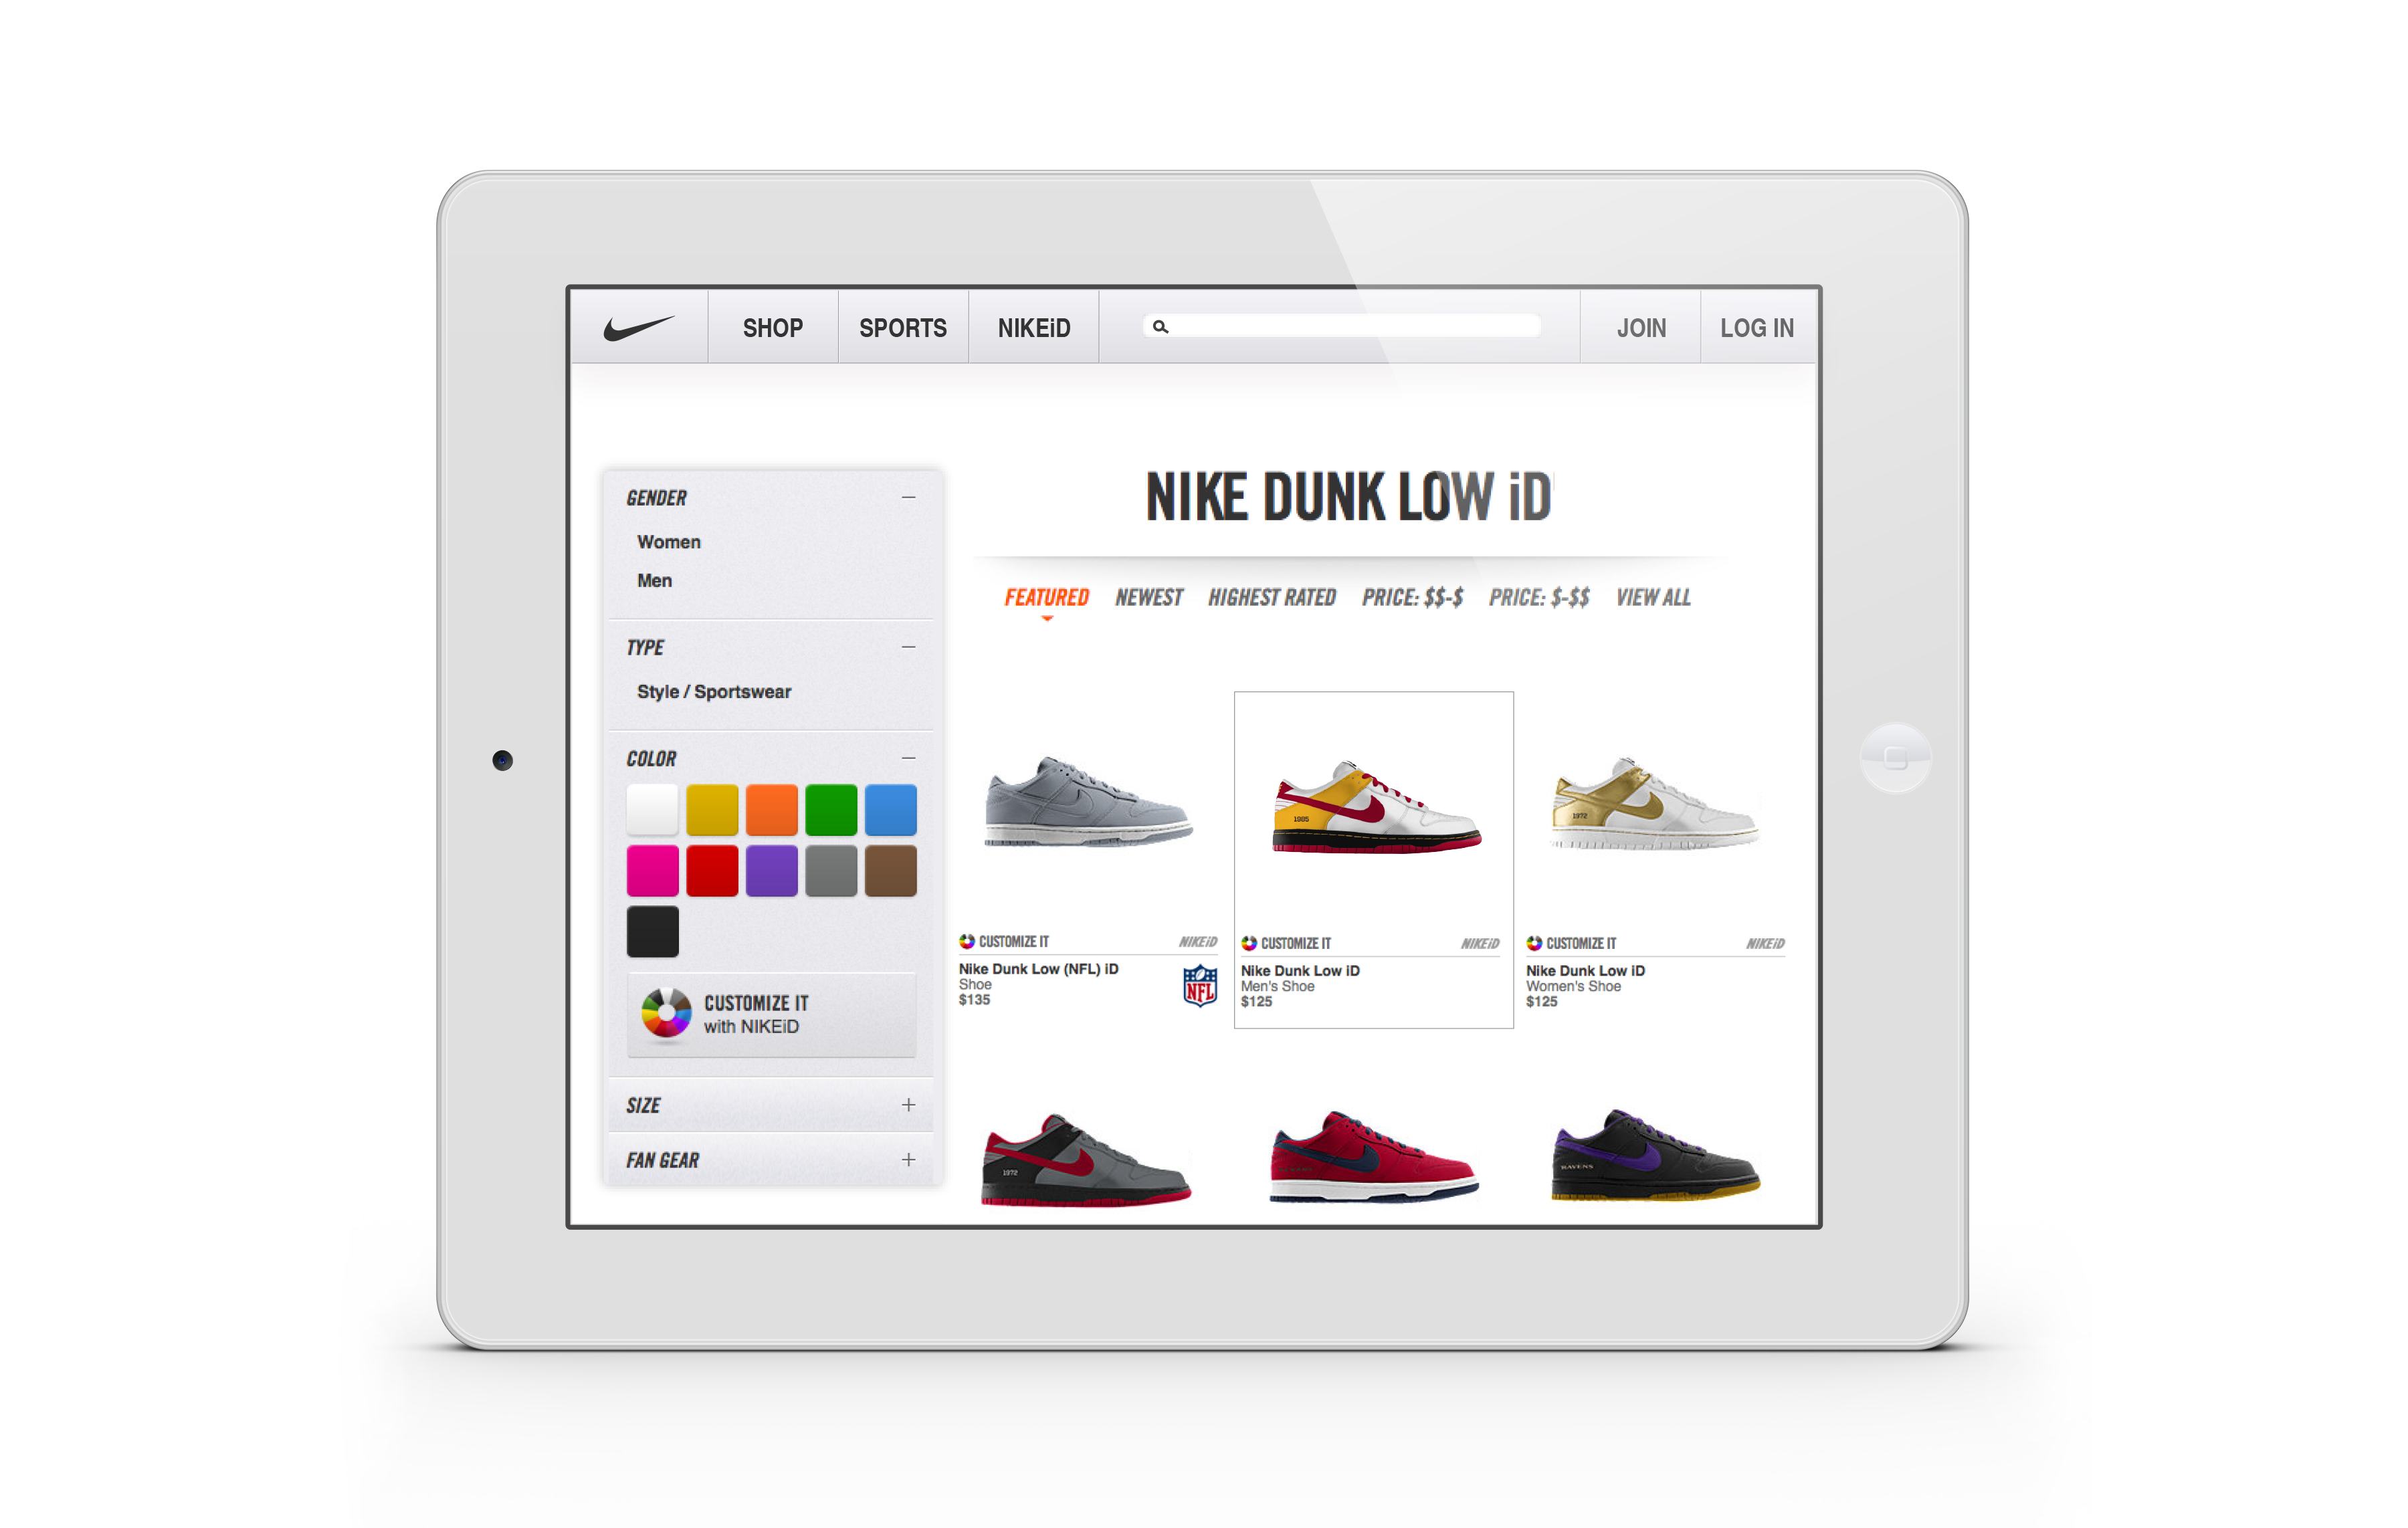 Jul 05,  · The service is also available in the NIKE iD area in many Nike retail stores, where consumers can check the materials in person and get advice from Nike representatives. A slightly higher premium price is charged in that case, and consumers can receive the product in four weeks.